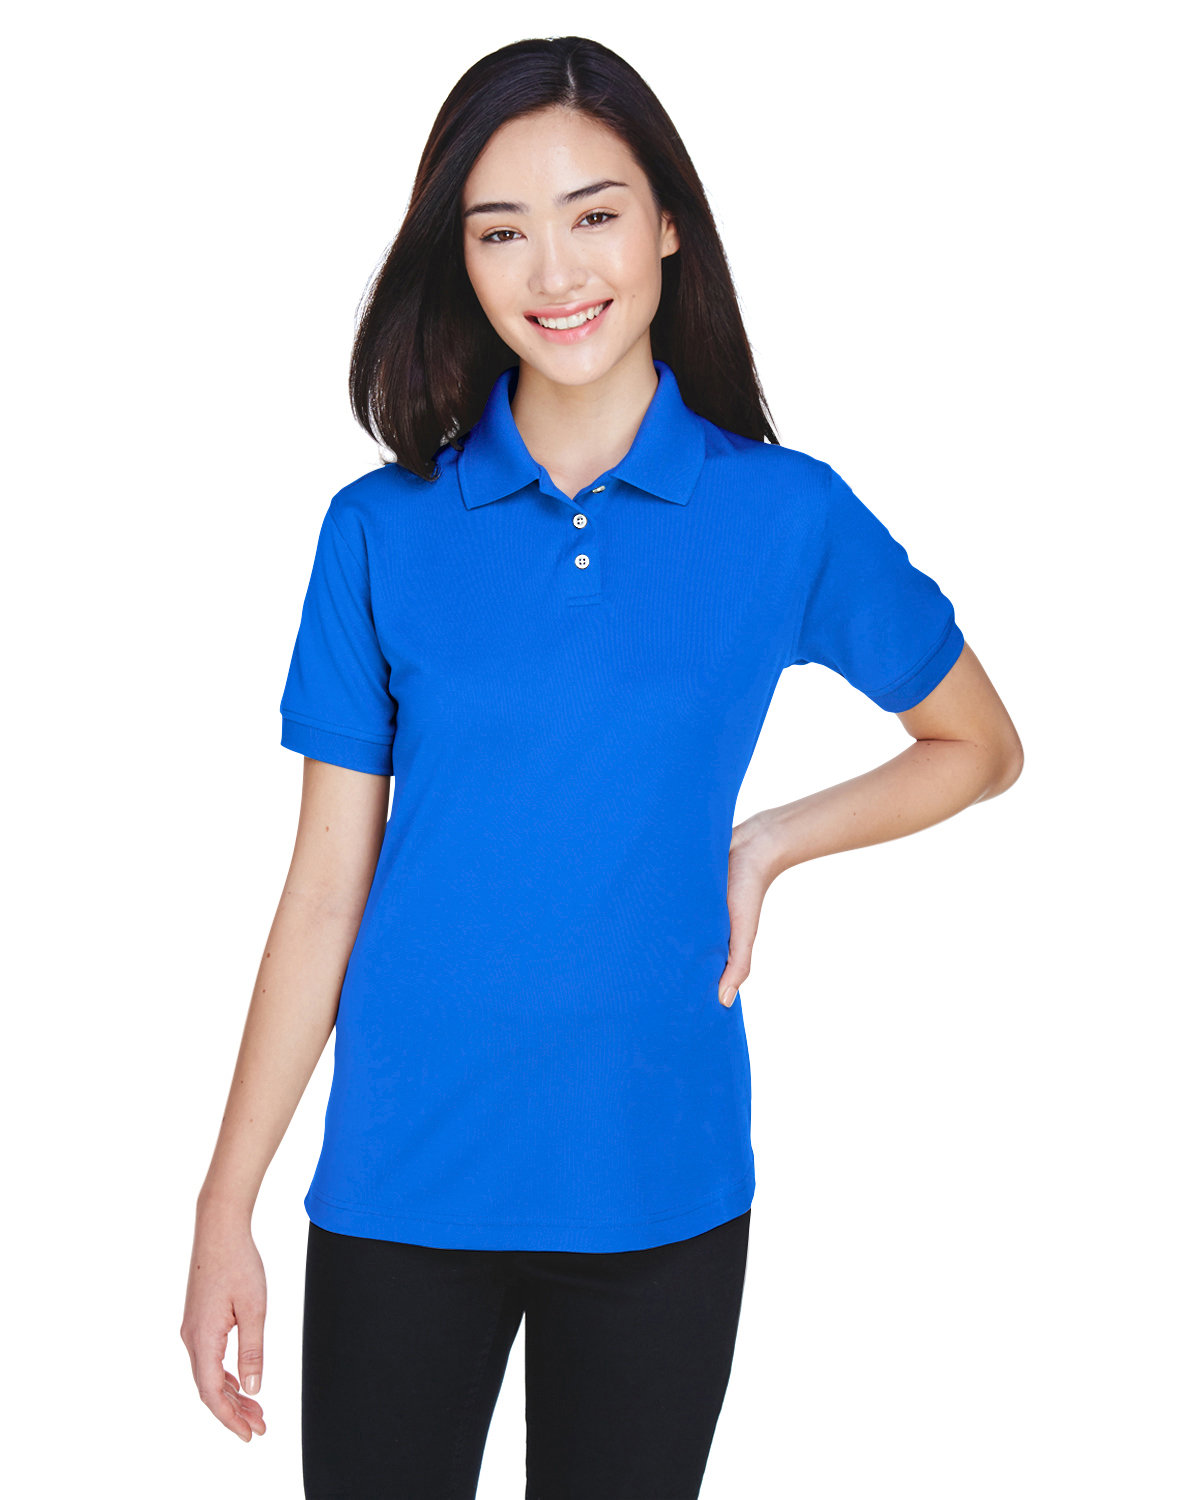 UltraClub Ladies' Platinum Performance Piqué Polo with TempControl Technology ROYAL